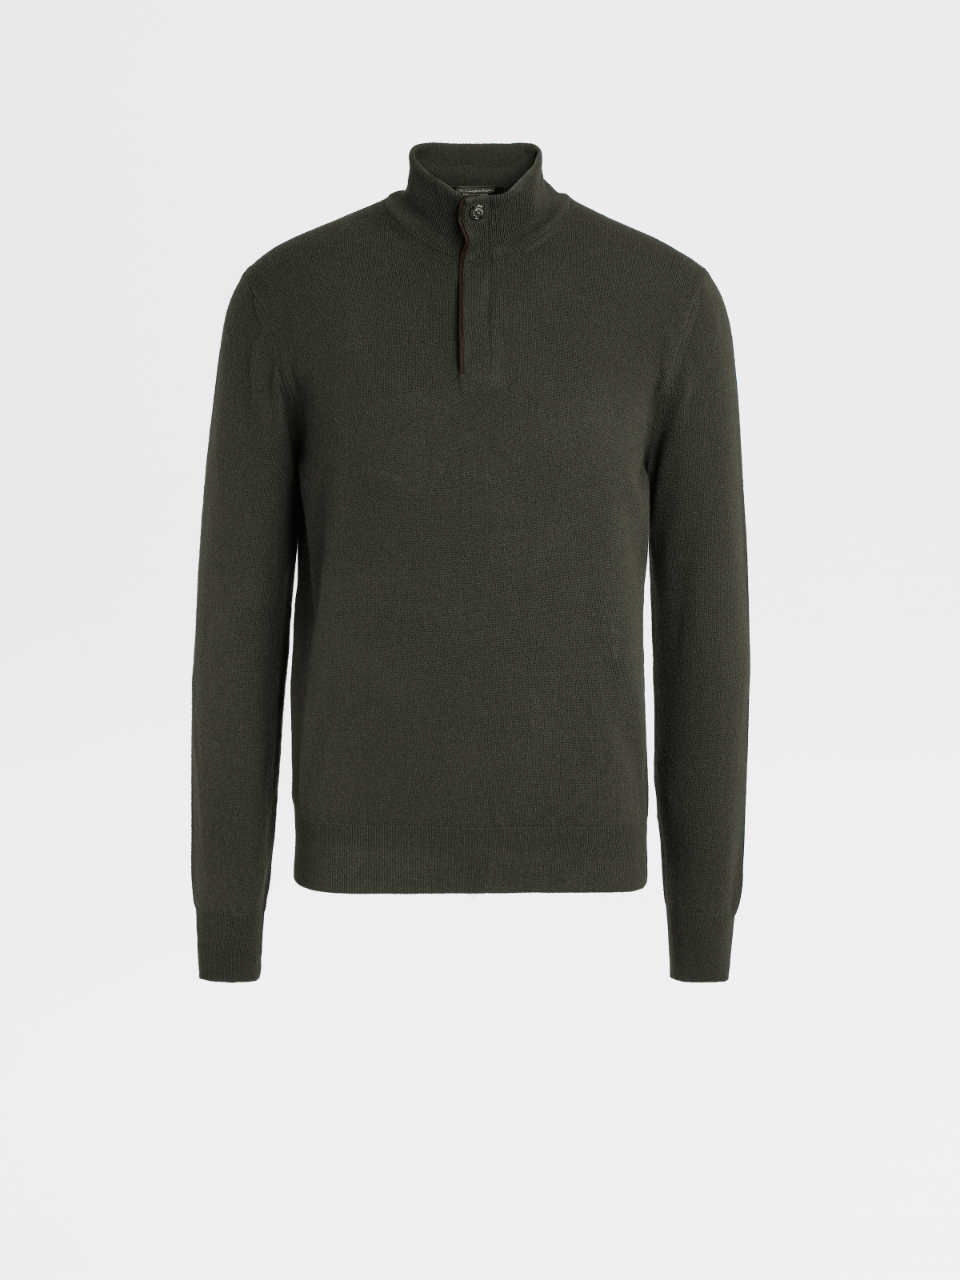 Premium Cashmere Knit Turtleneck